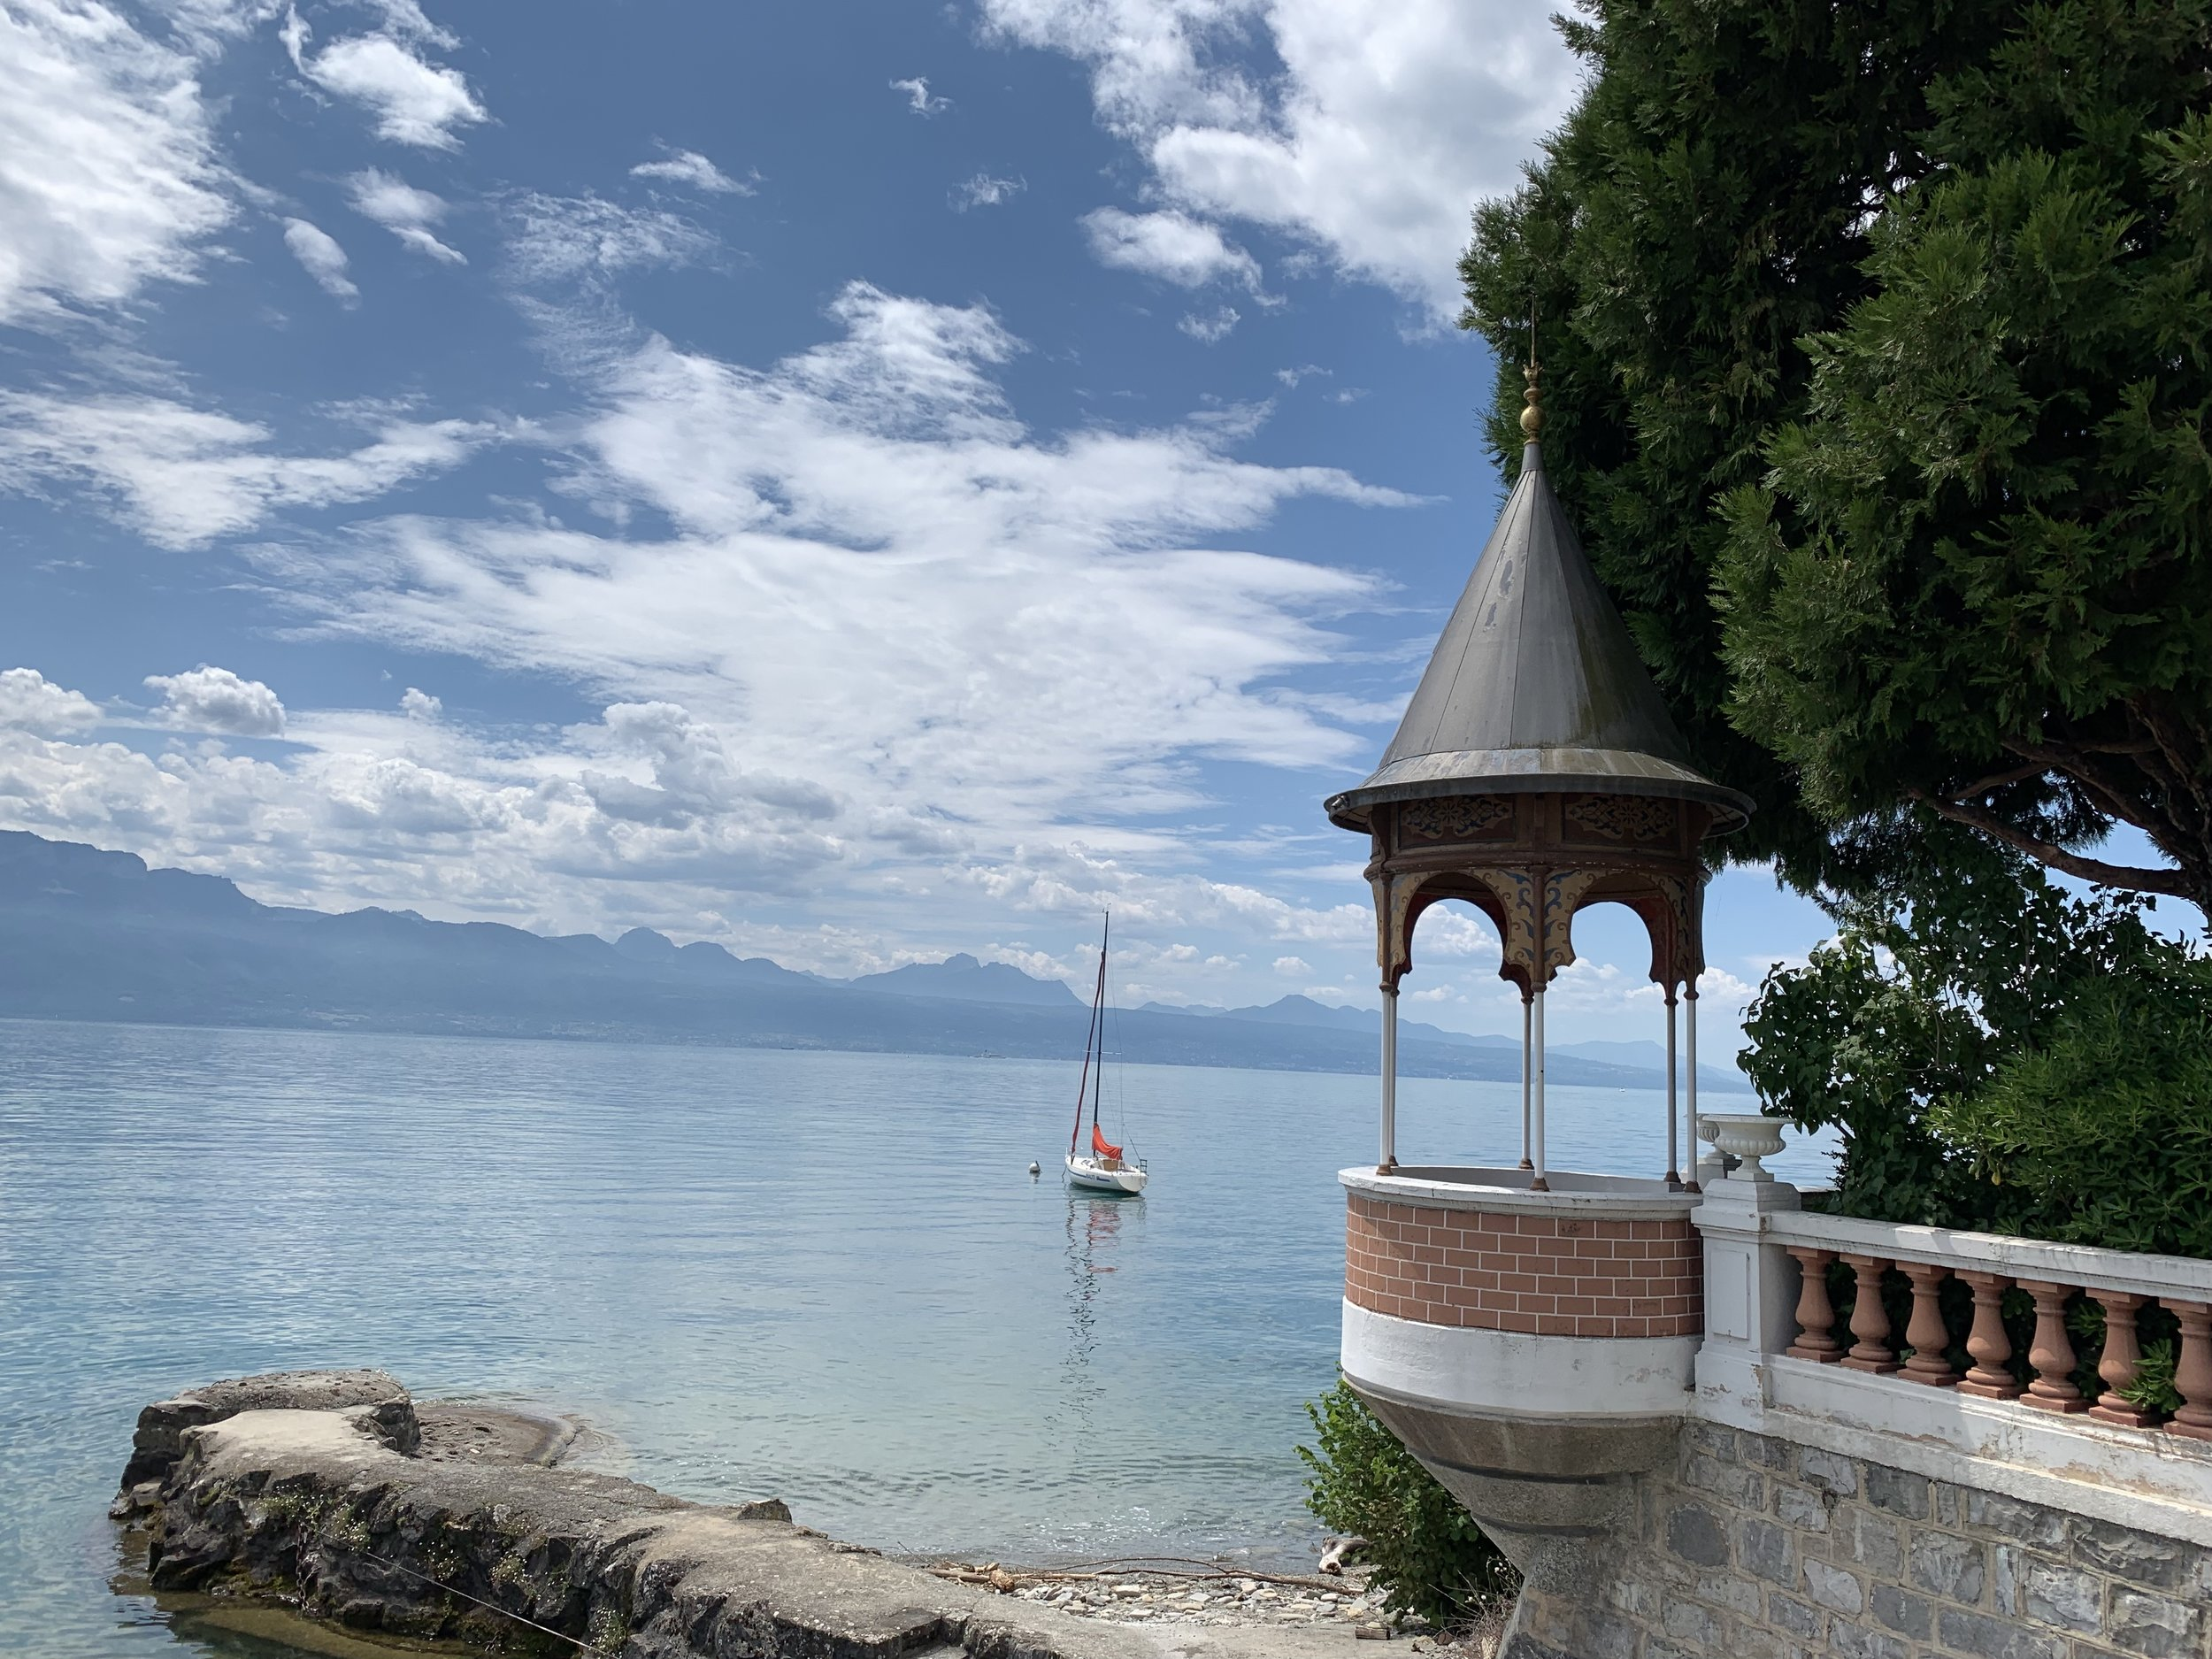 A view over Lake Geneva from Lutry, Switzerland. July 12, 2019.